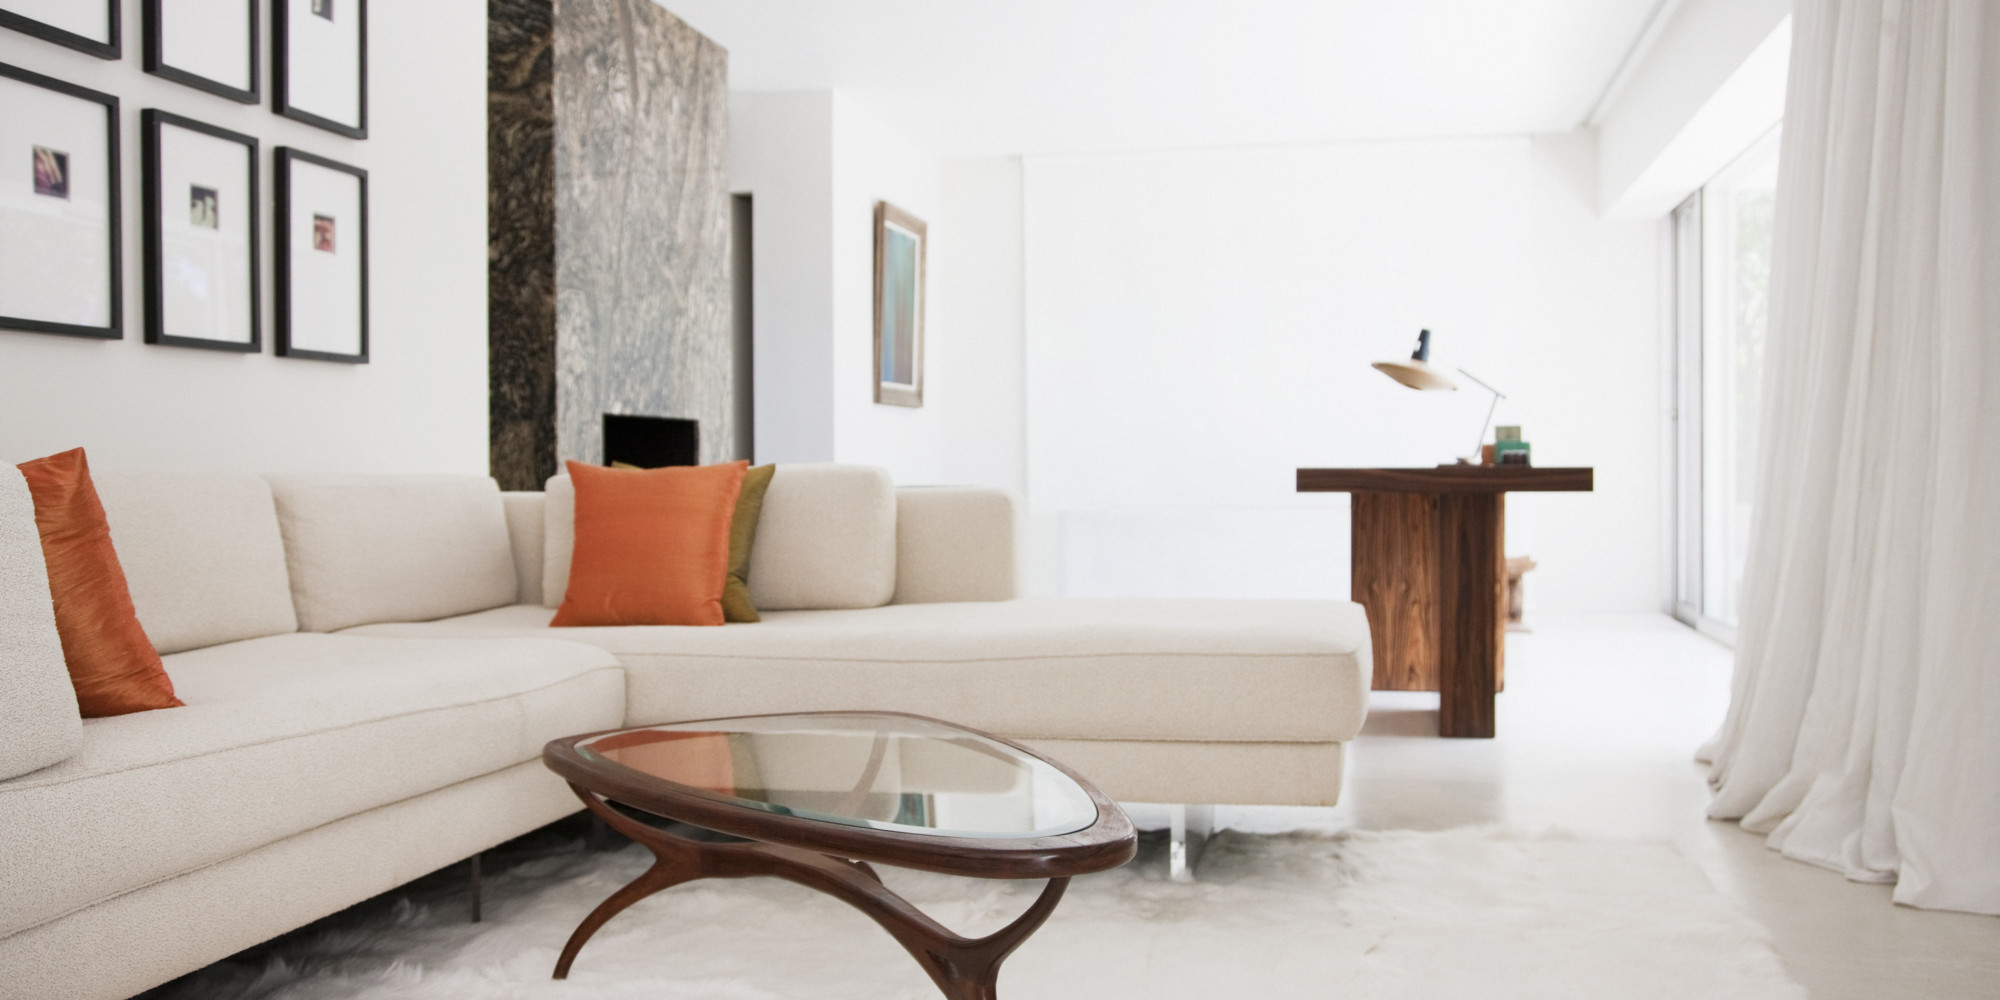 6 Ways To Properly Arrange Furniture And Make Your Room Look More ...